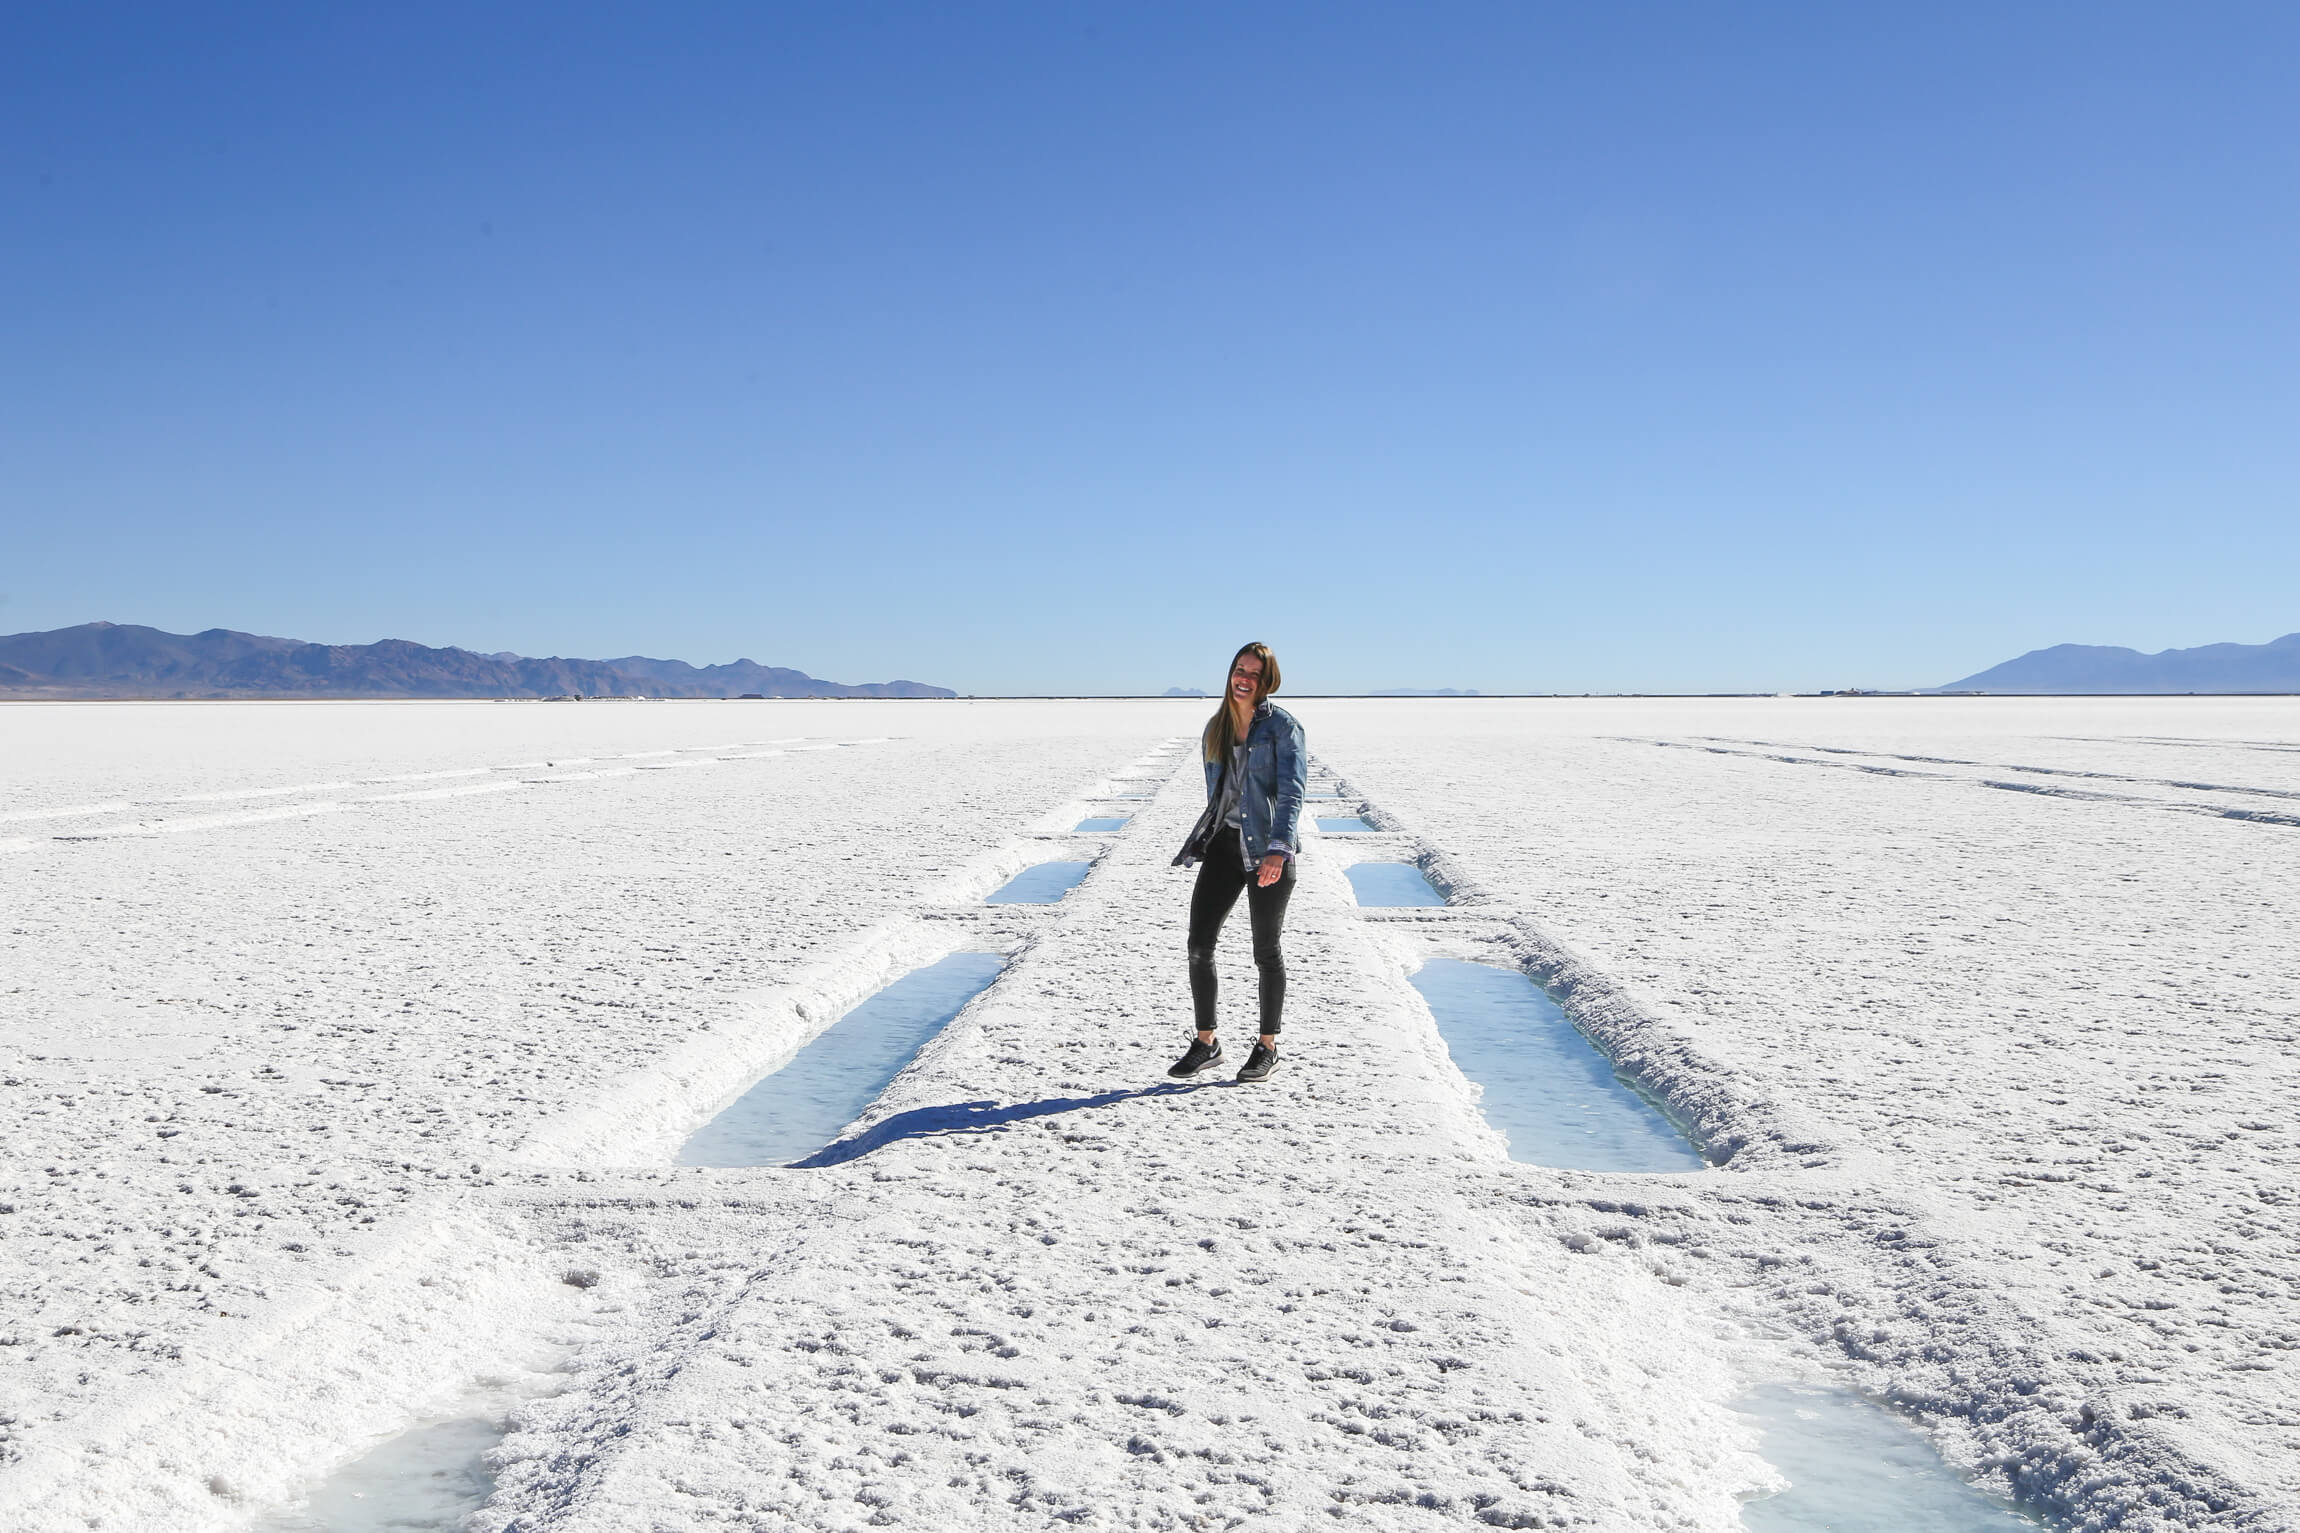 How to see the Salinas Grandes Salt Flats in Argentina — Sol